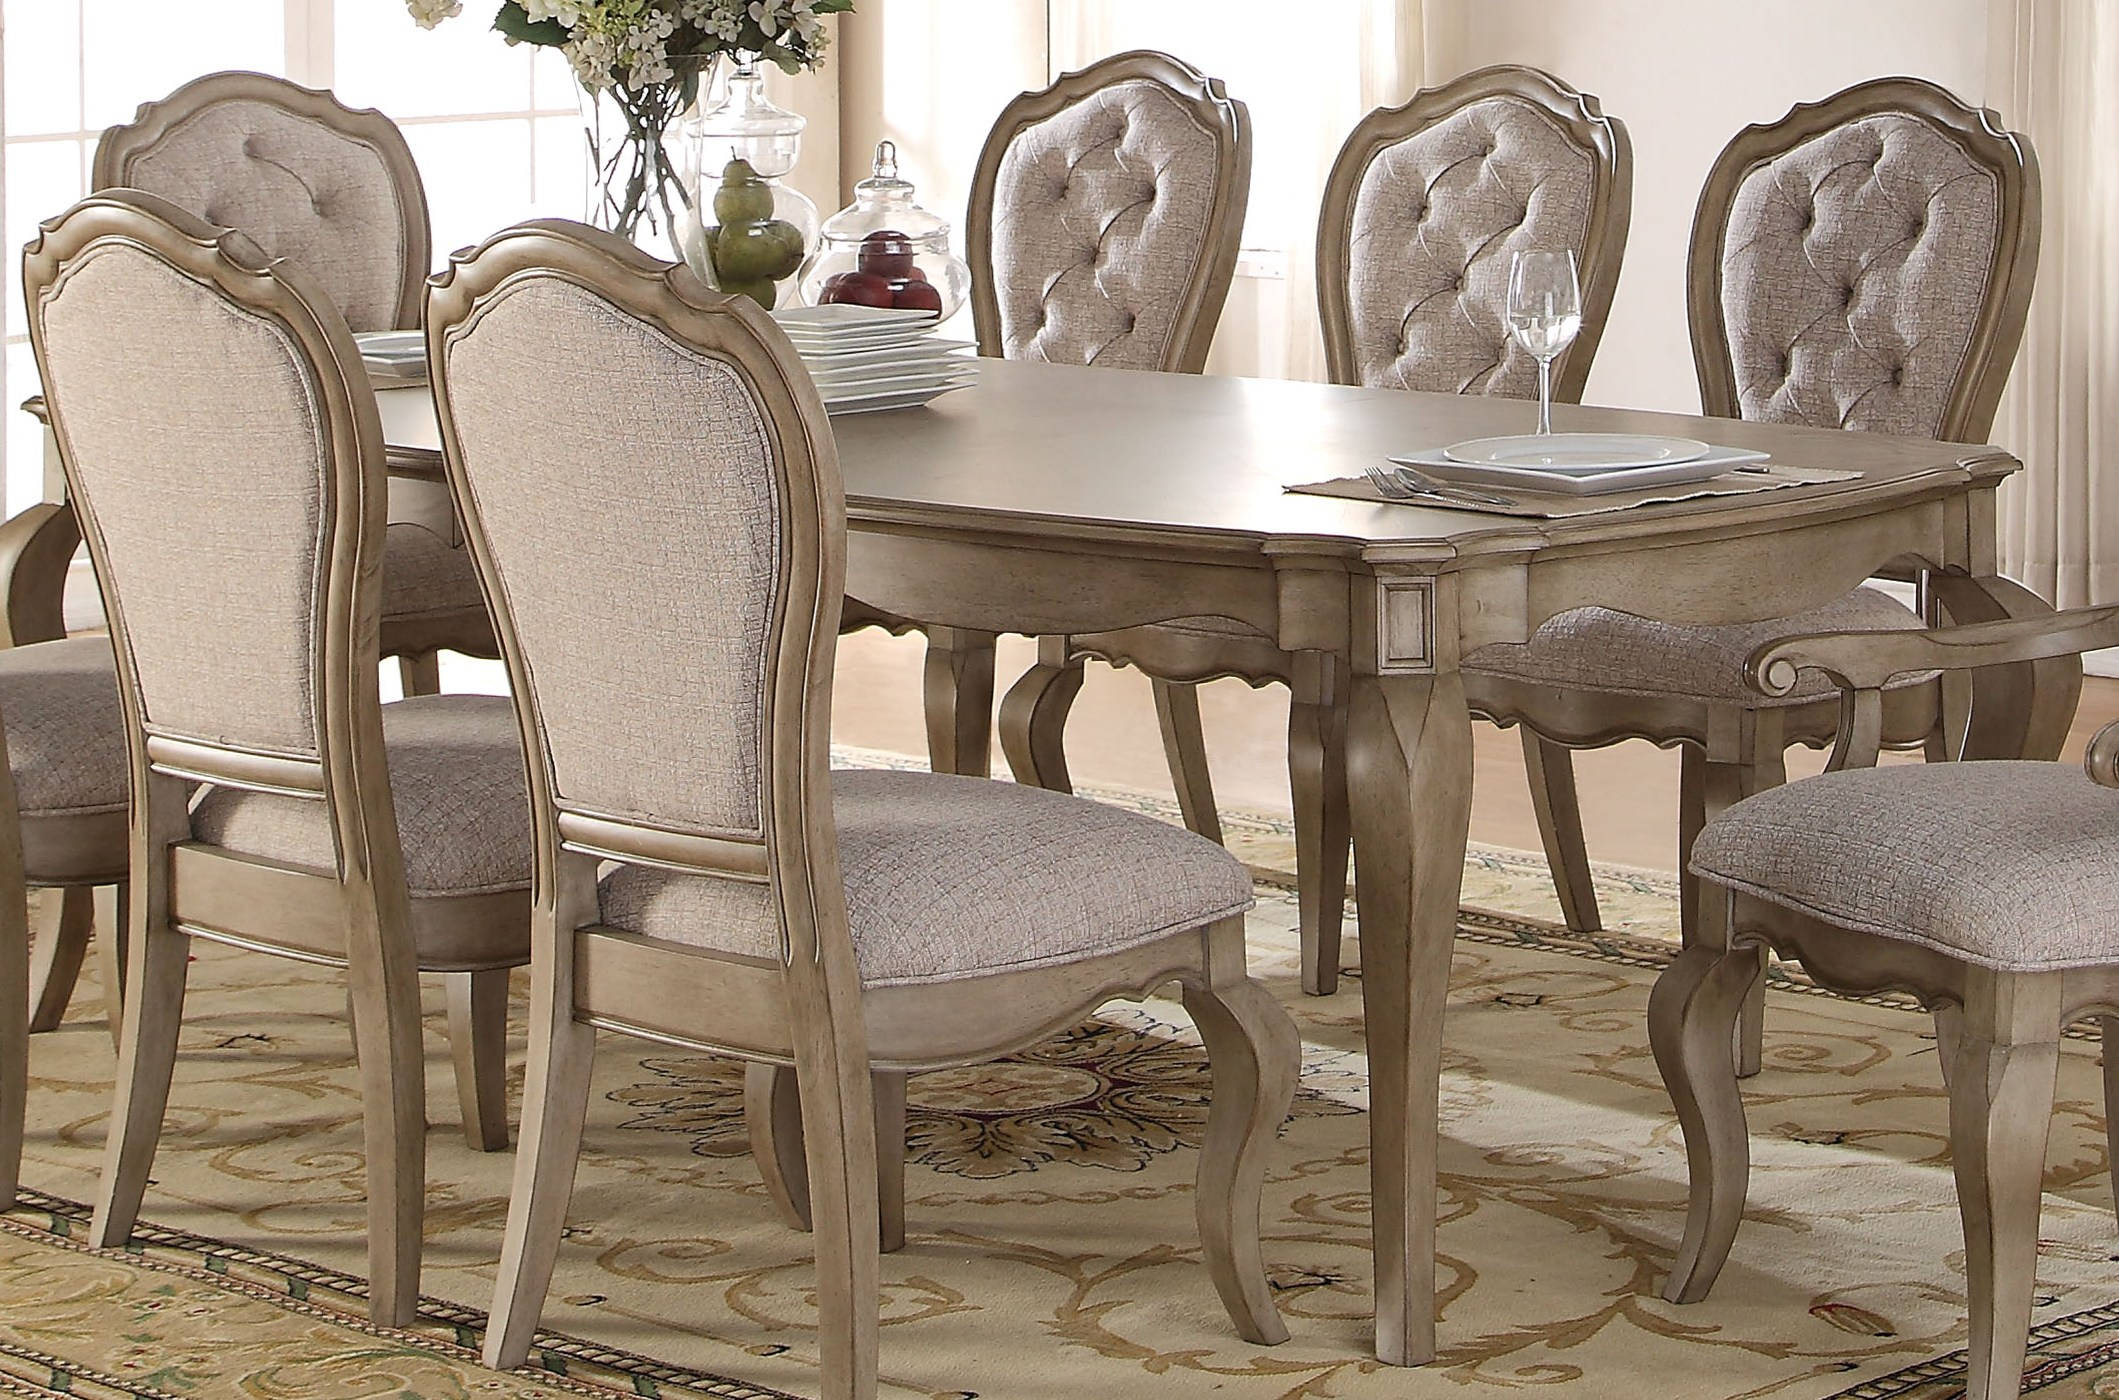 2019 Acme Furniture Chelmsford Antique Taupe Dining Table (View 2 of 20)